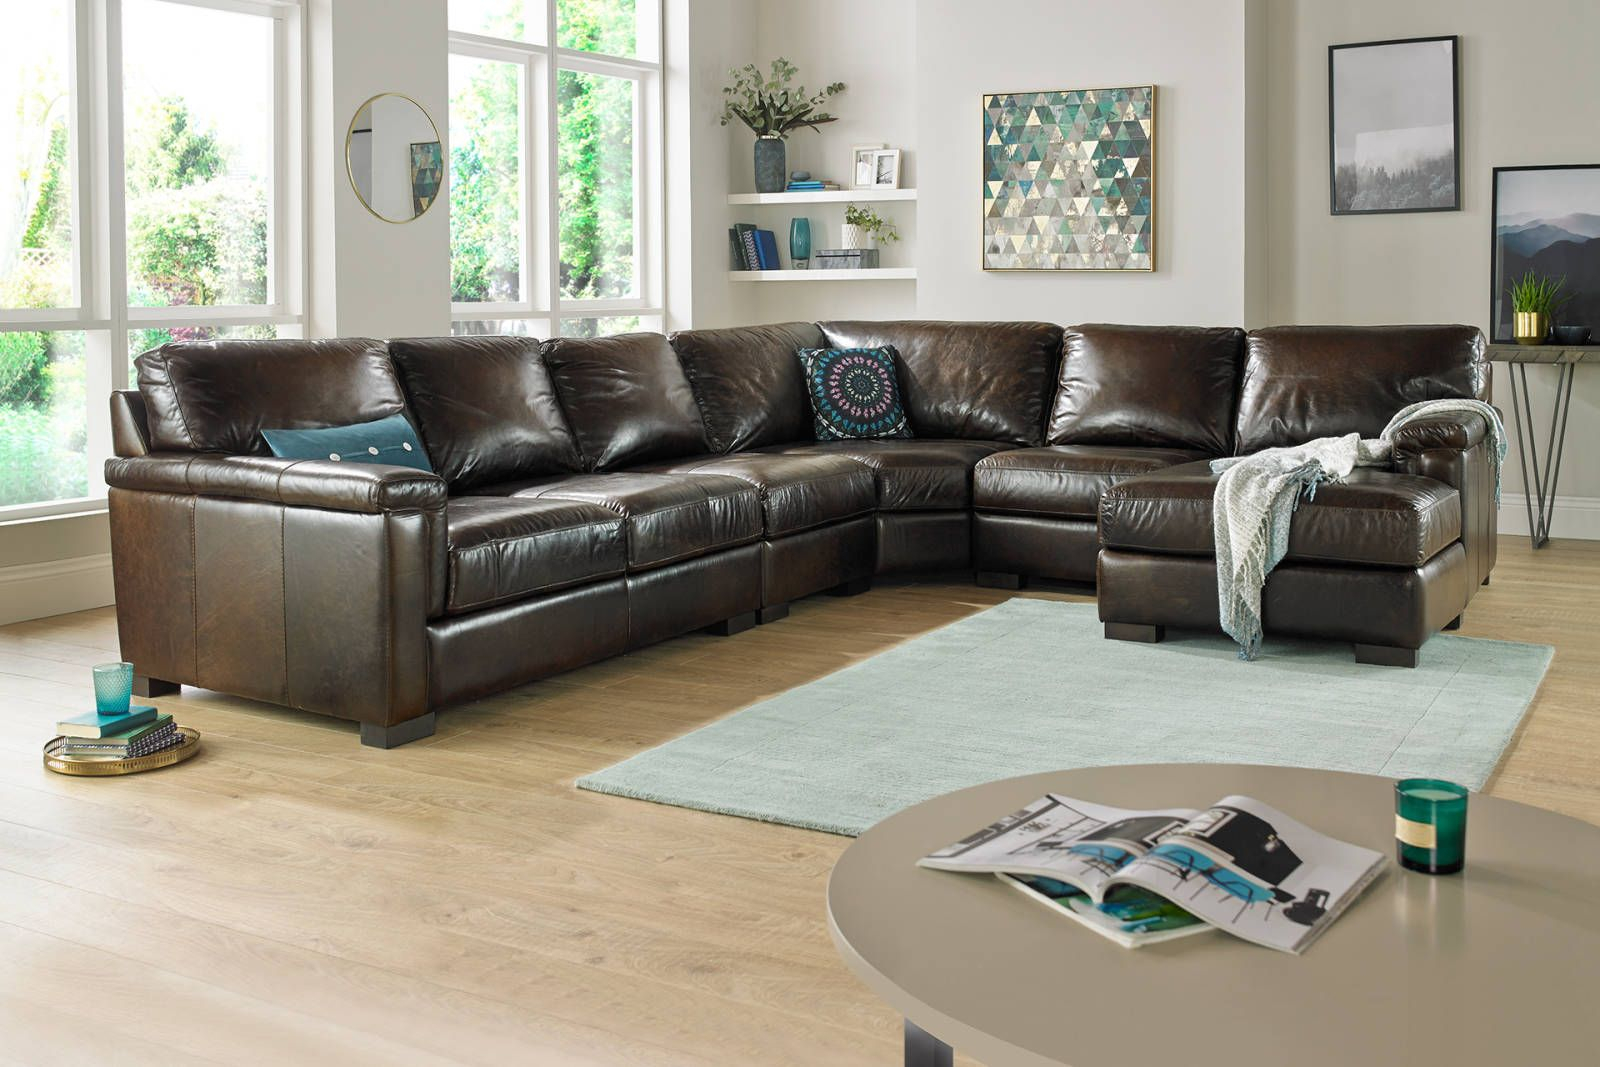 Malone Sofology Sofa Leather Sofa Family Room inside proportions 1600 X 1067